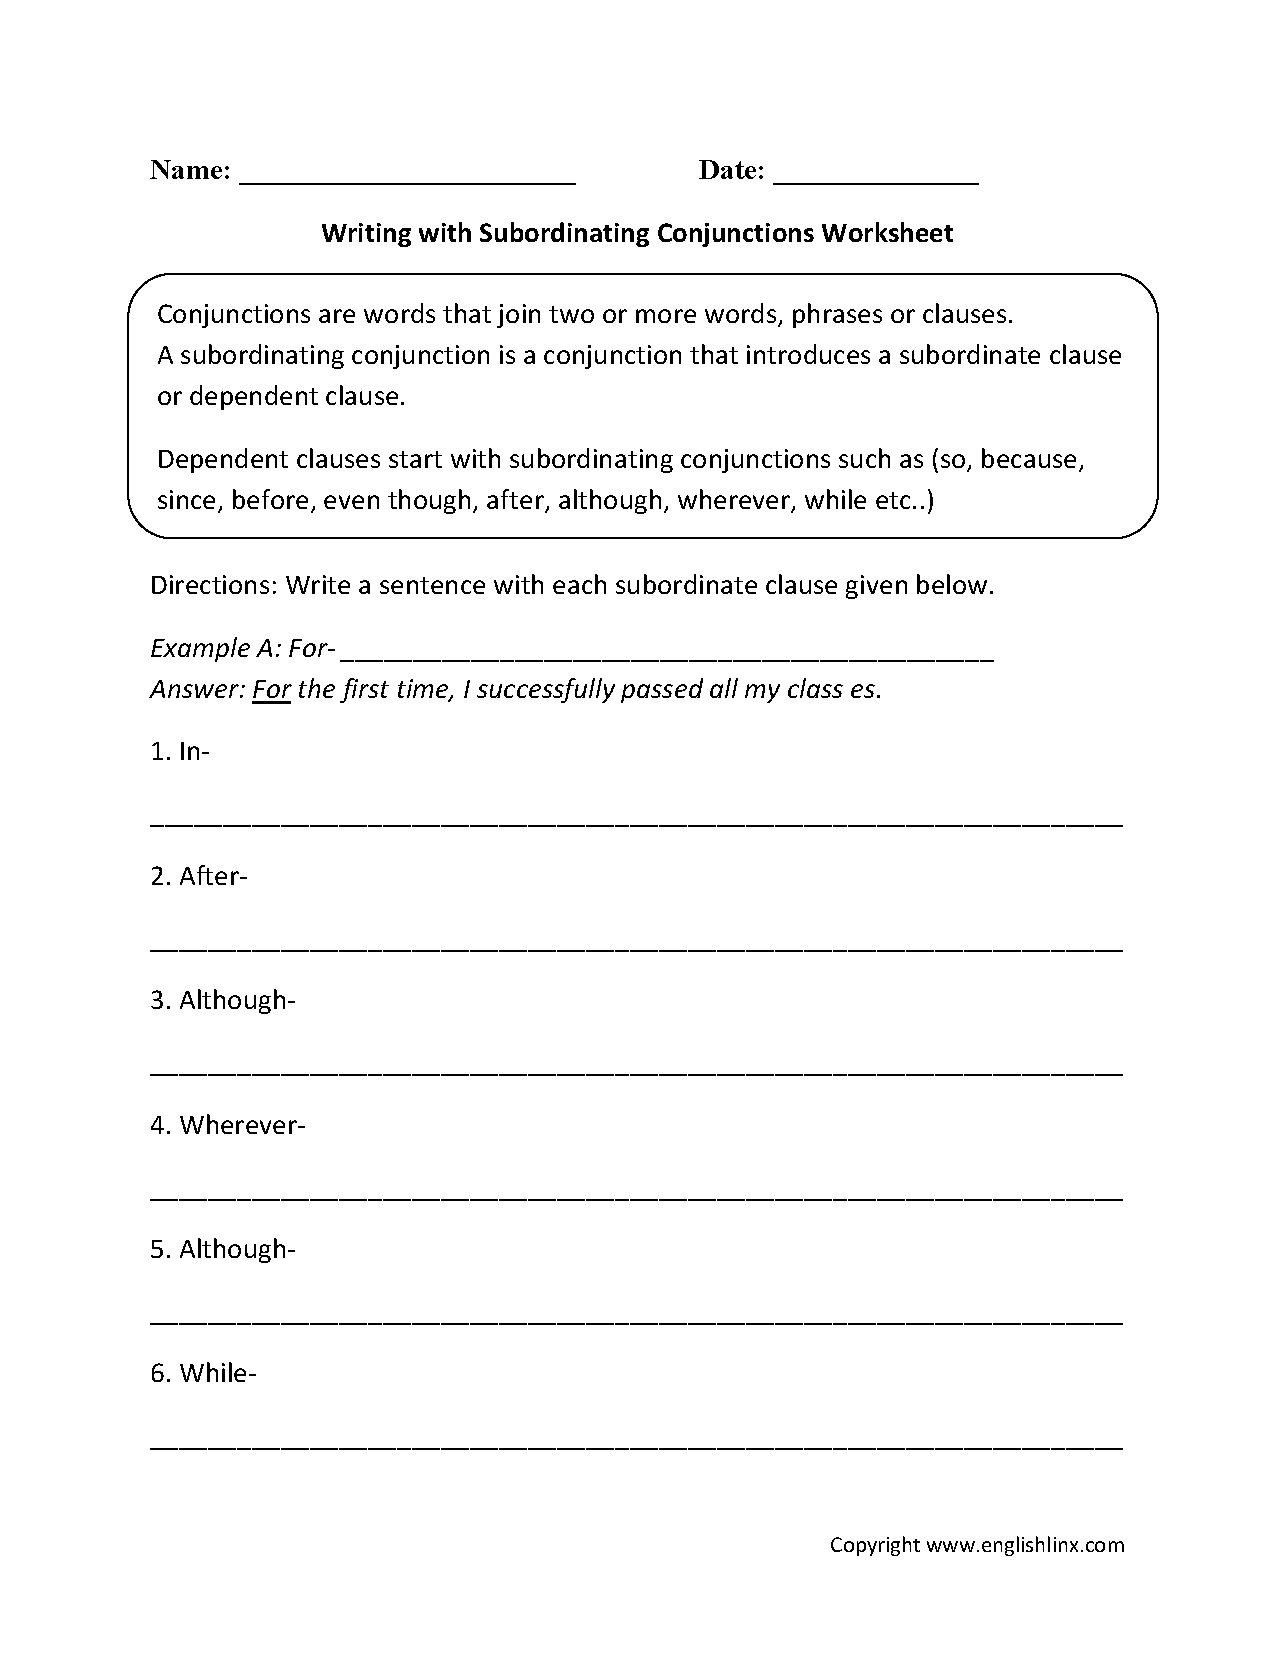 Writing With Subordinating Conjunctions Worksheets